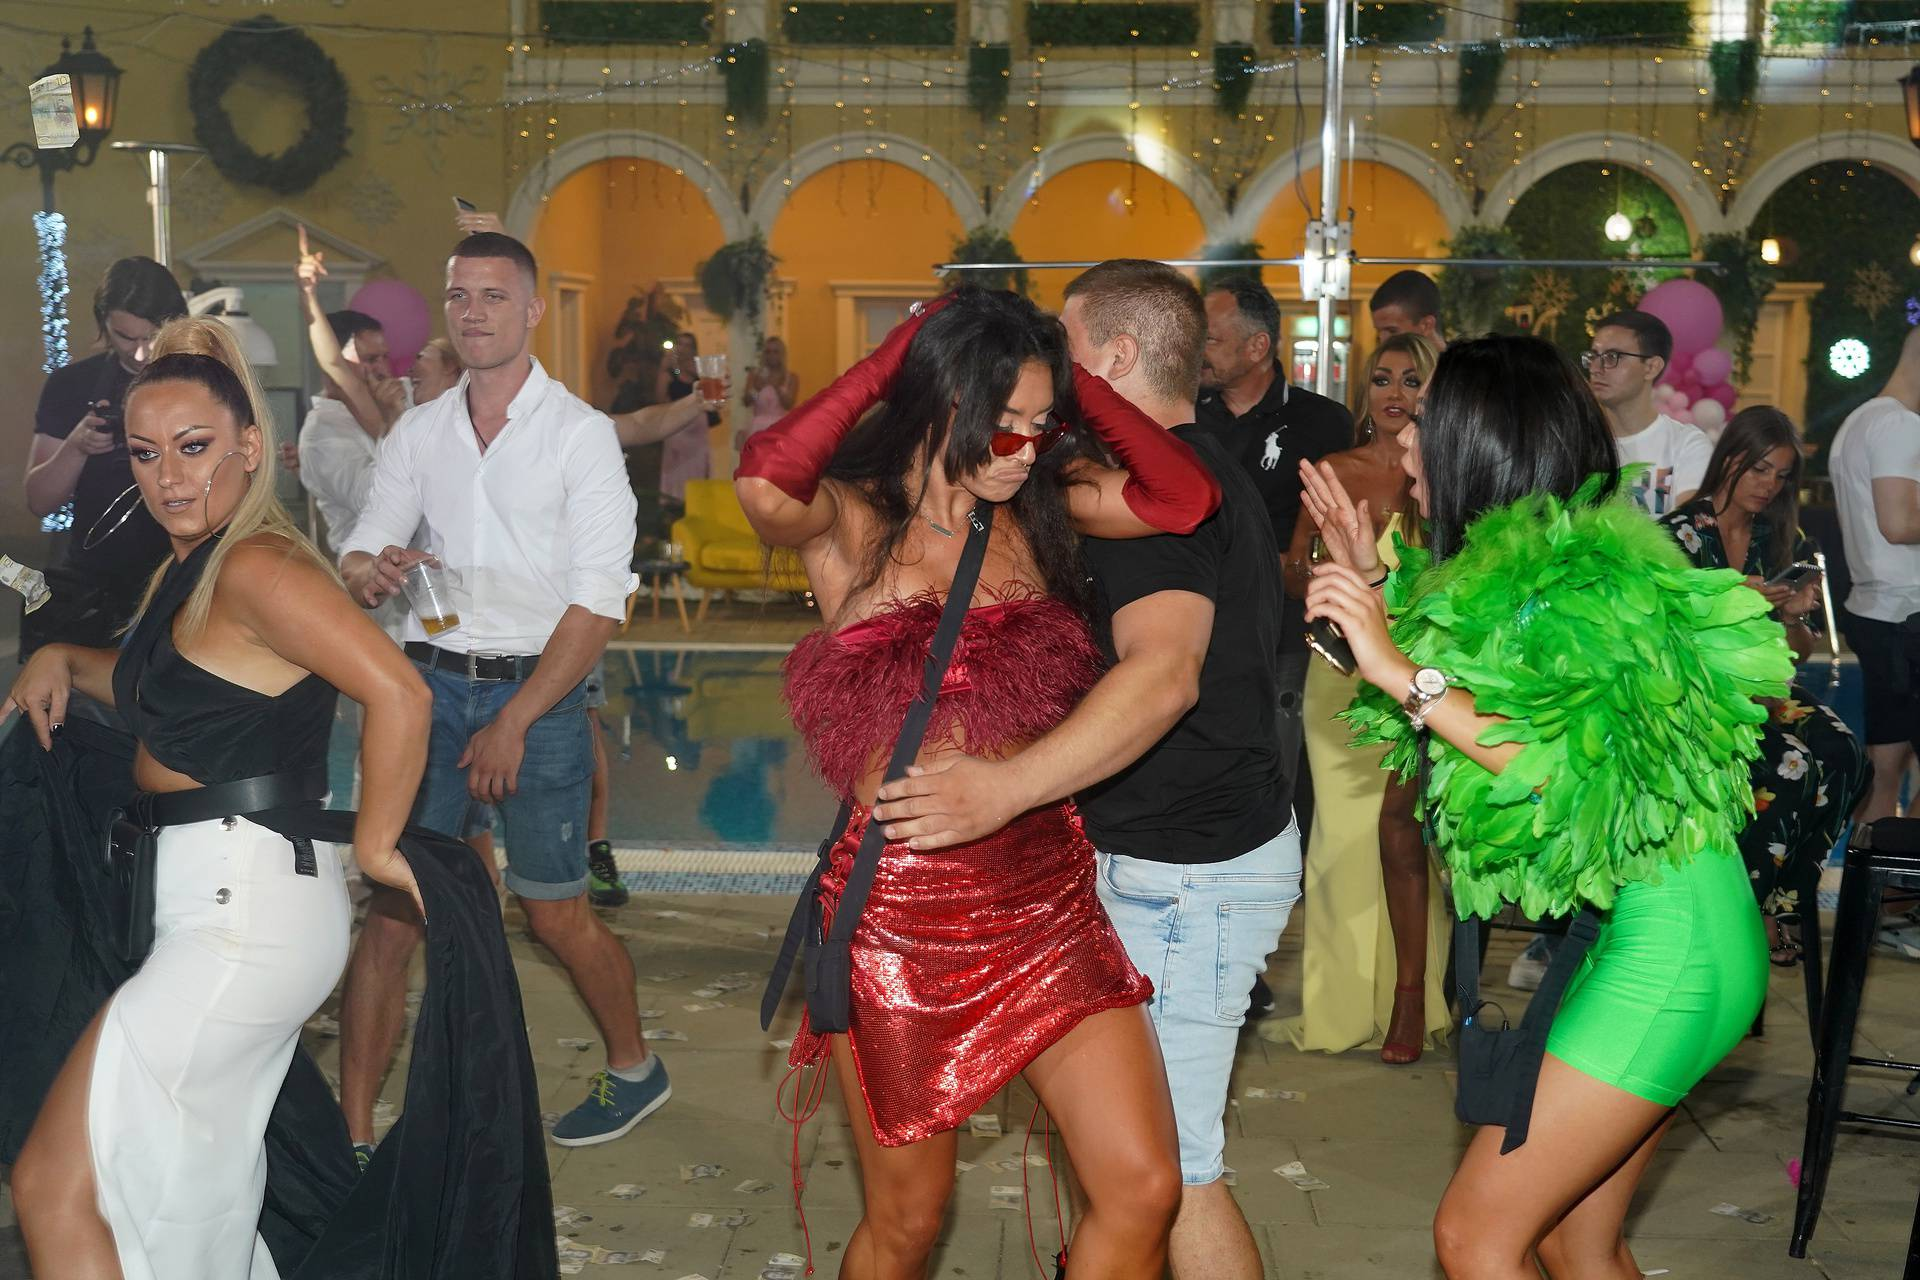 """A party on the occasion of the end of the reality show """"Zadruga 4"""" held in Simanovci.Zurka povodom kraja reality showa """"Zadruga 4"""" odrzana u Simanovcima."""